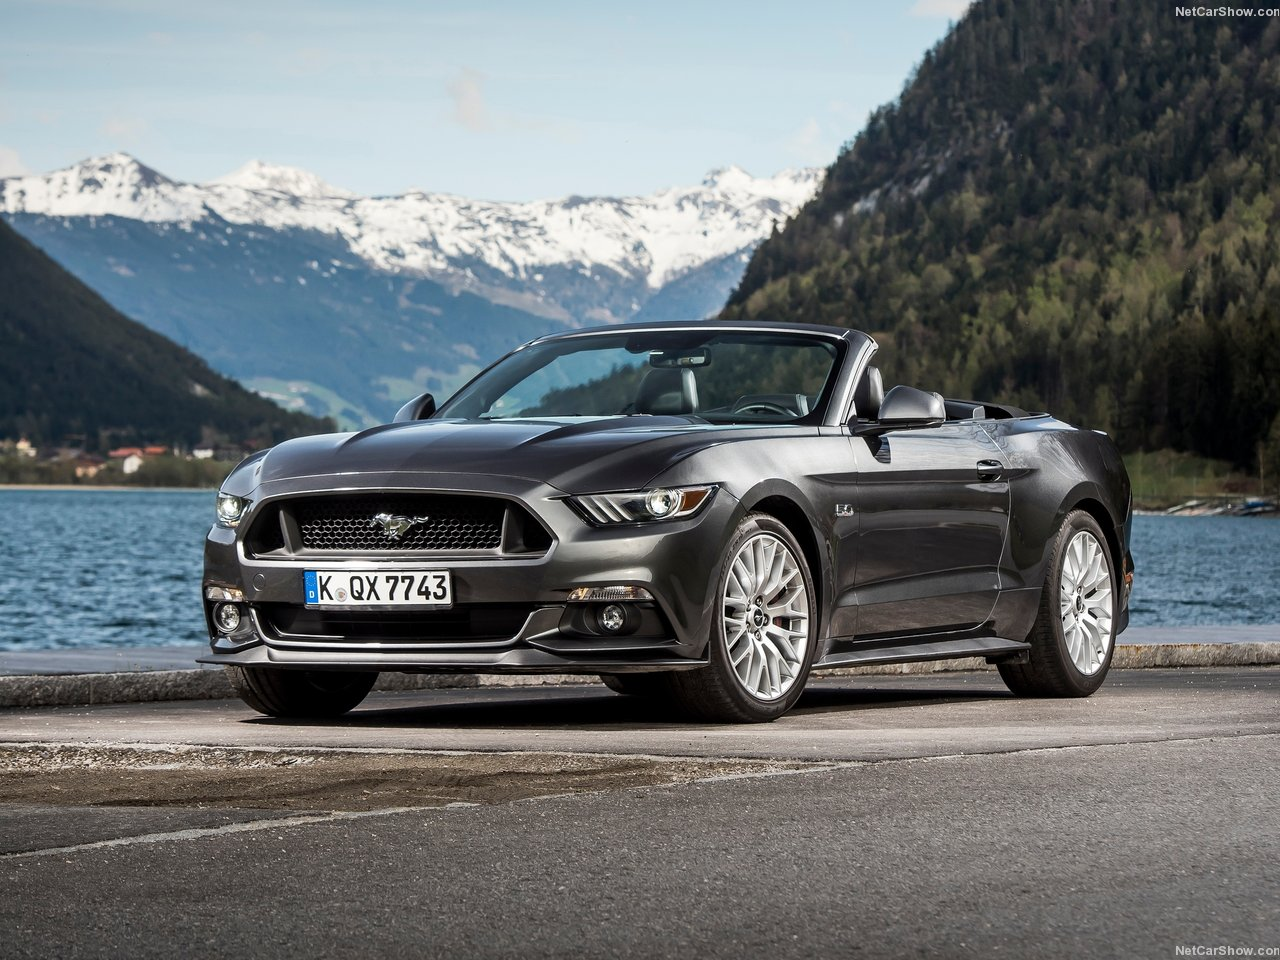 Ford Mustang Convertible EU-Version photo 142111